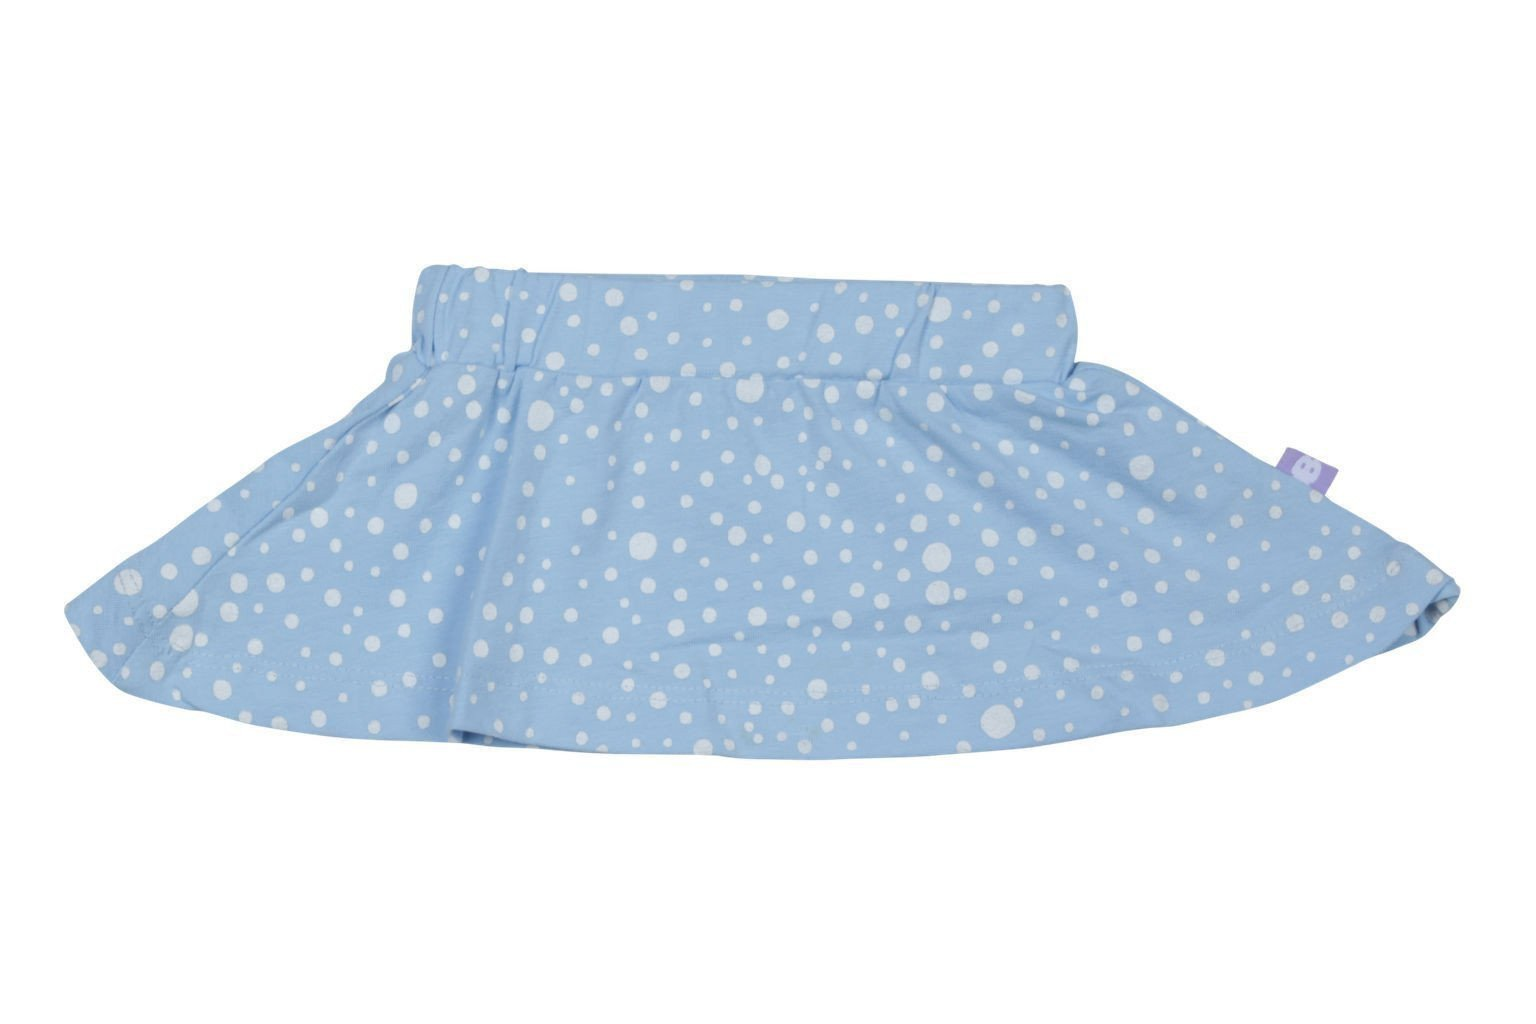 Polka Dot Printed Skirt - HUGABUG